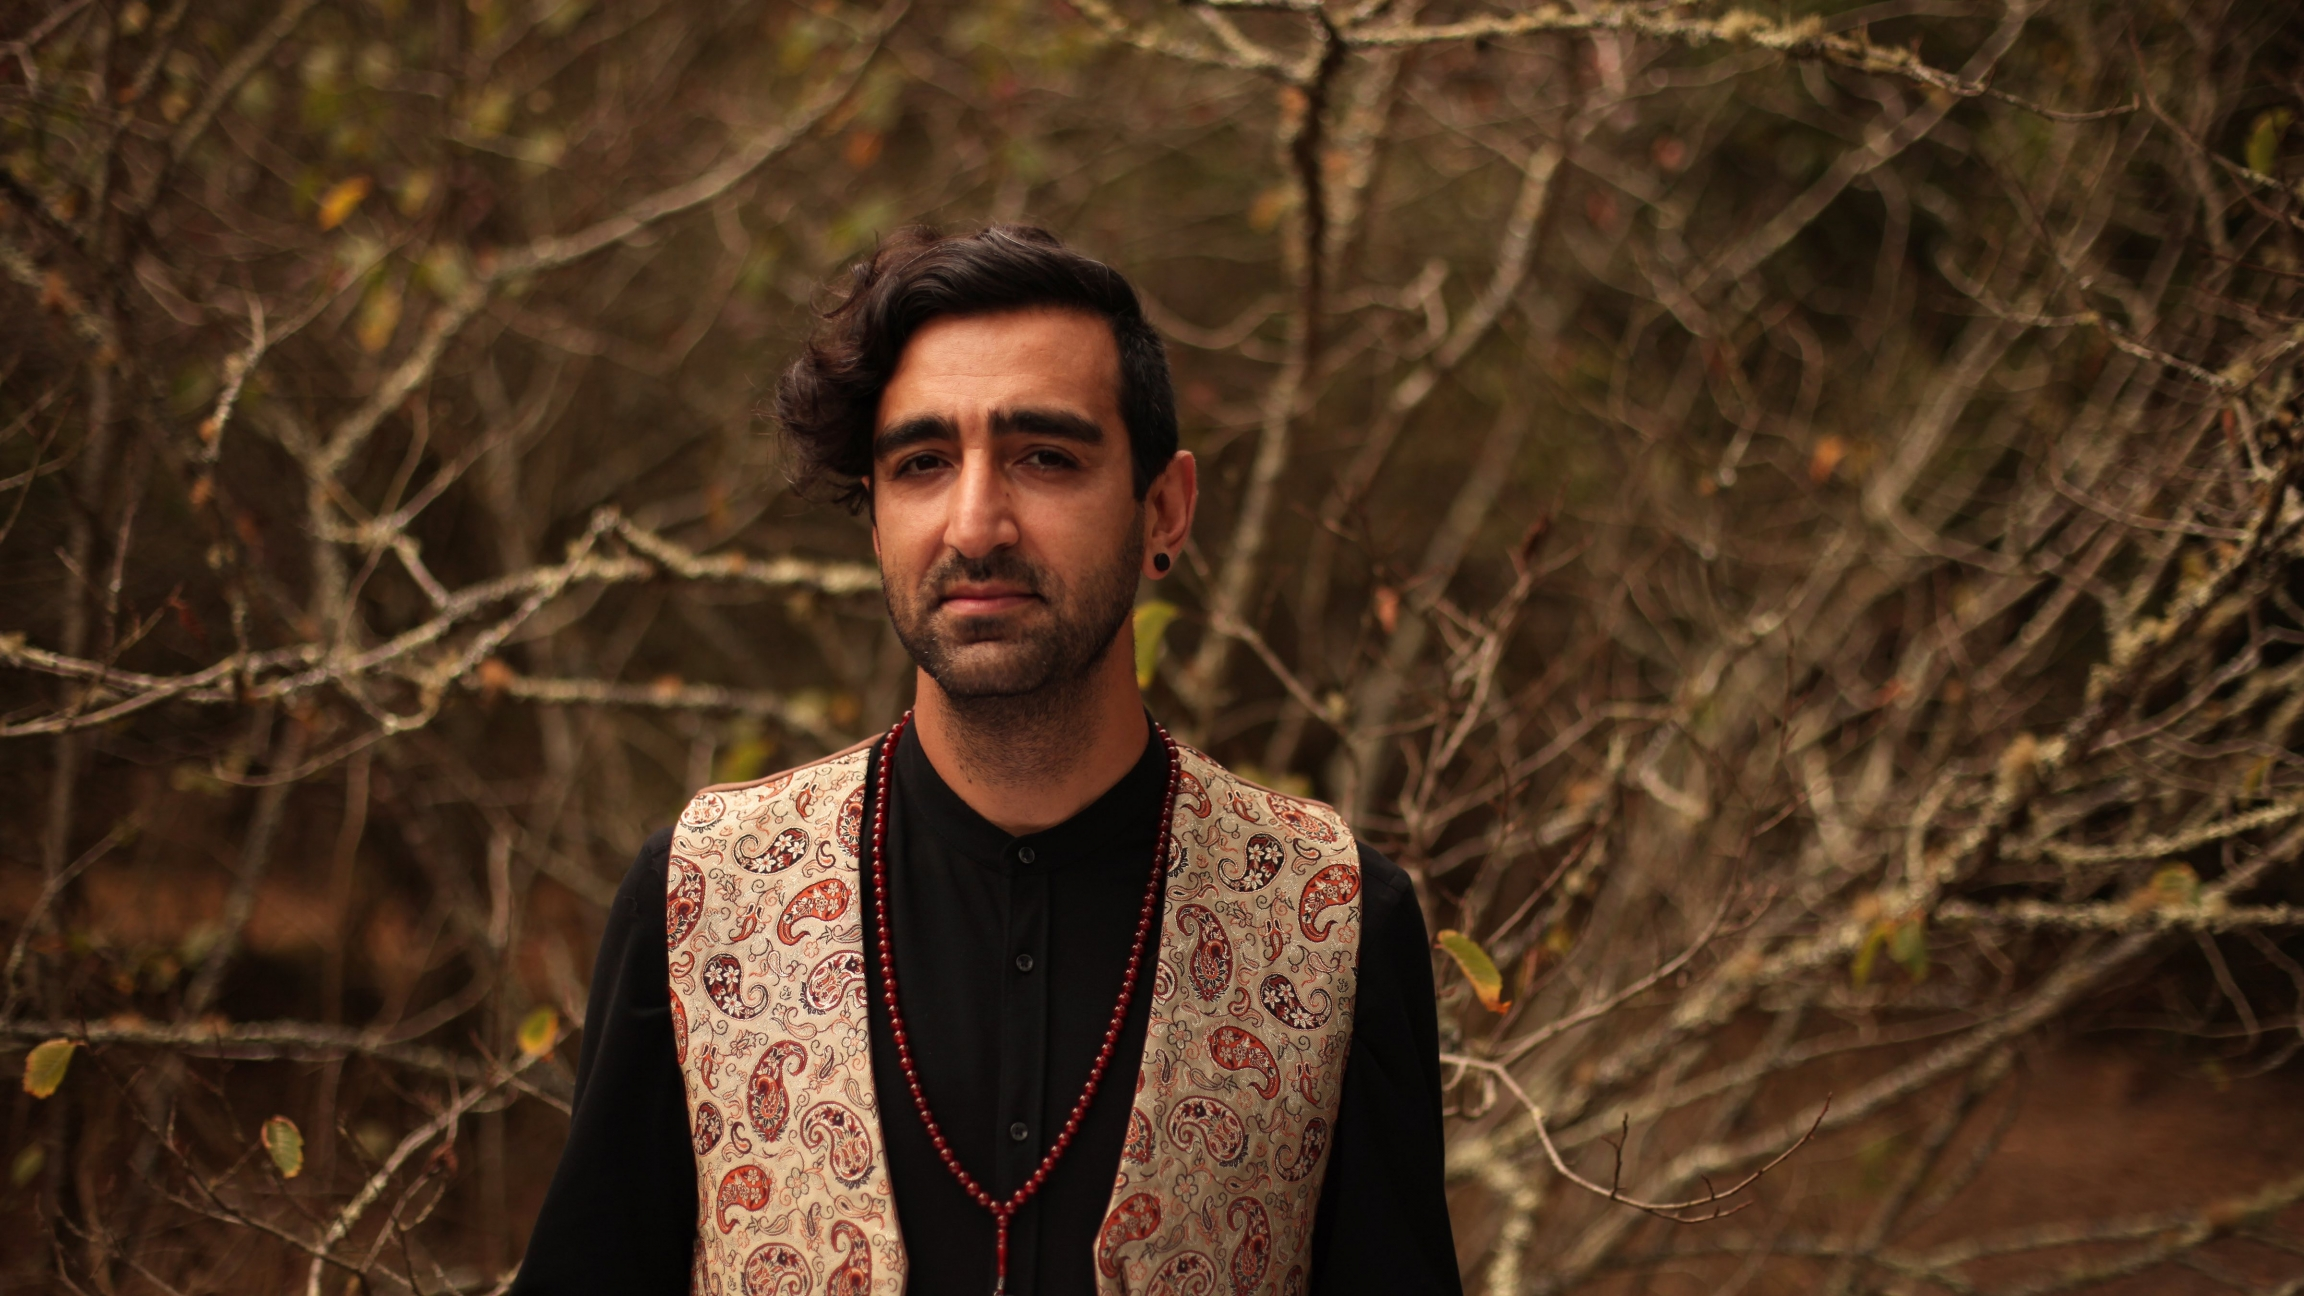 SabhaAminikia immigrated to the US as a refugee and began studying at the San Francisco Conservatory of Music. But even as he launched his career in America, his music was often focused on Iran.